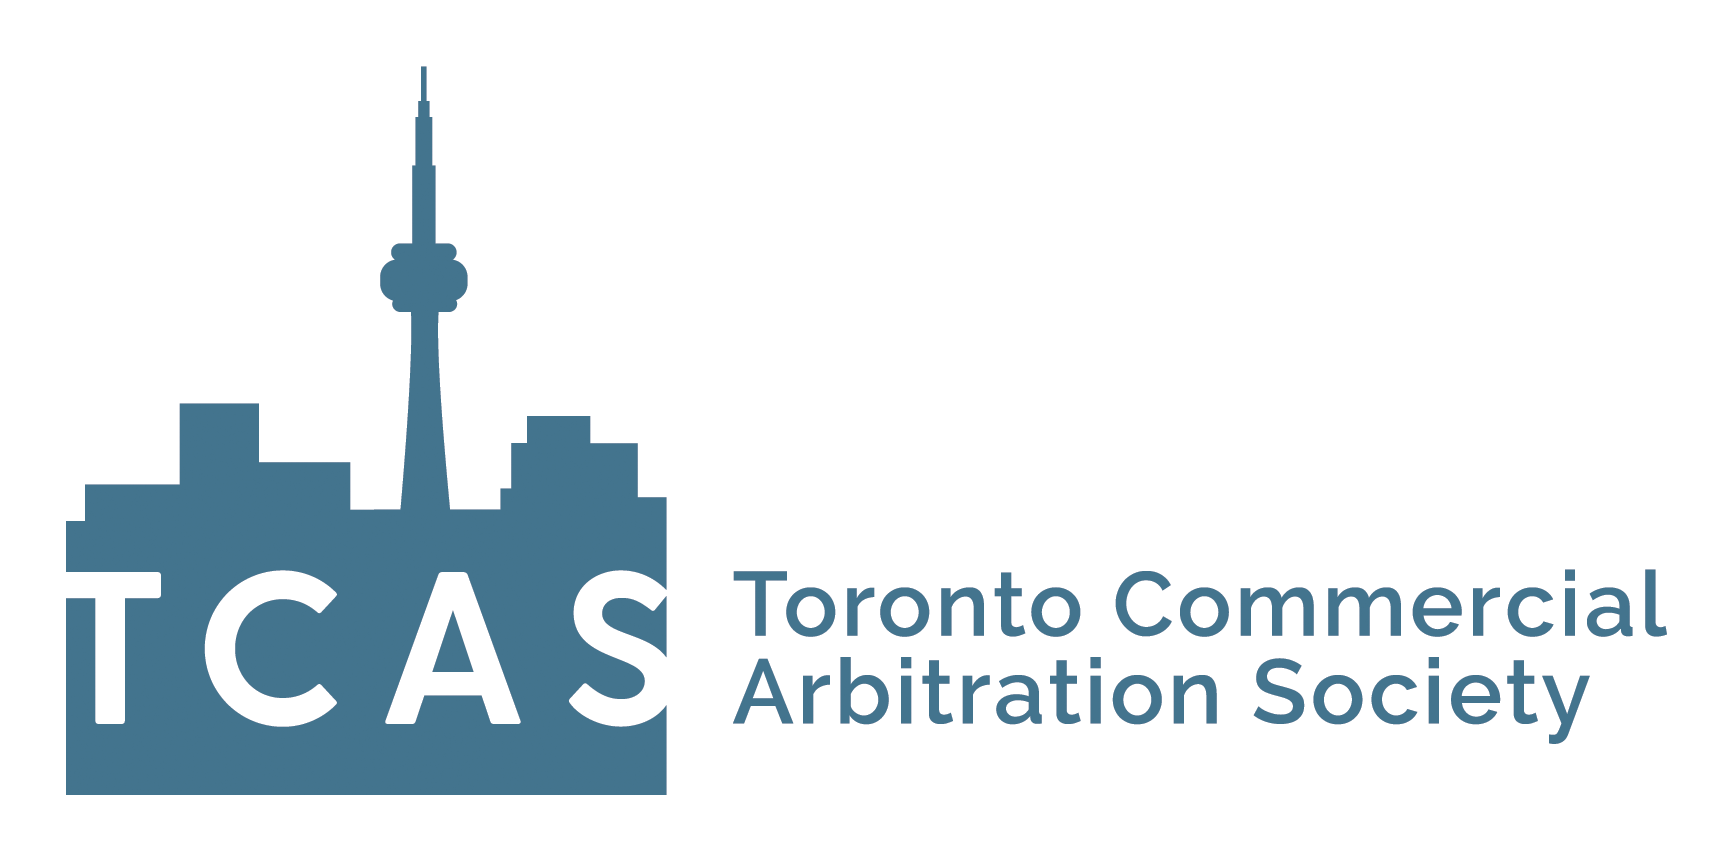 Toronto Commercial Arbitration Society